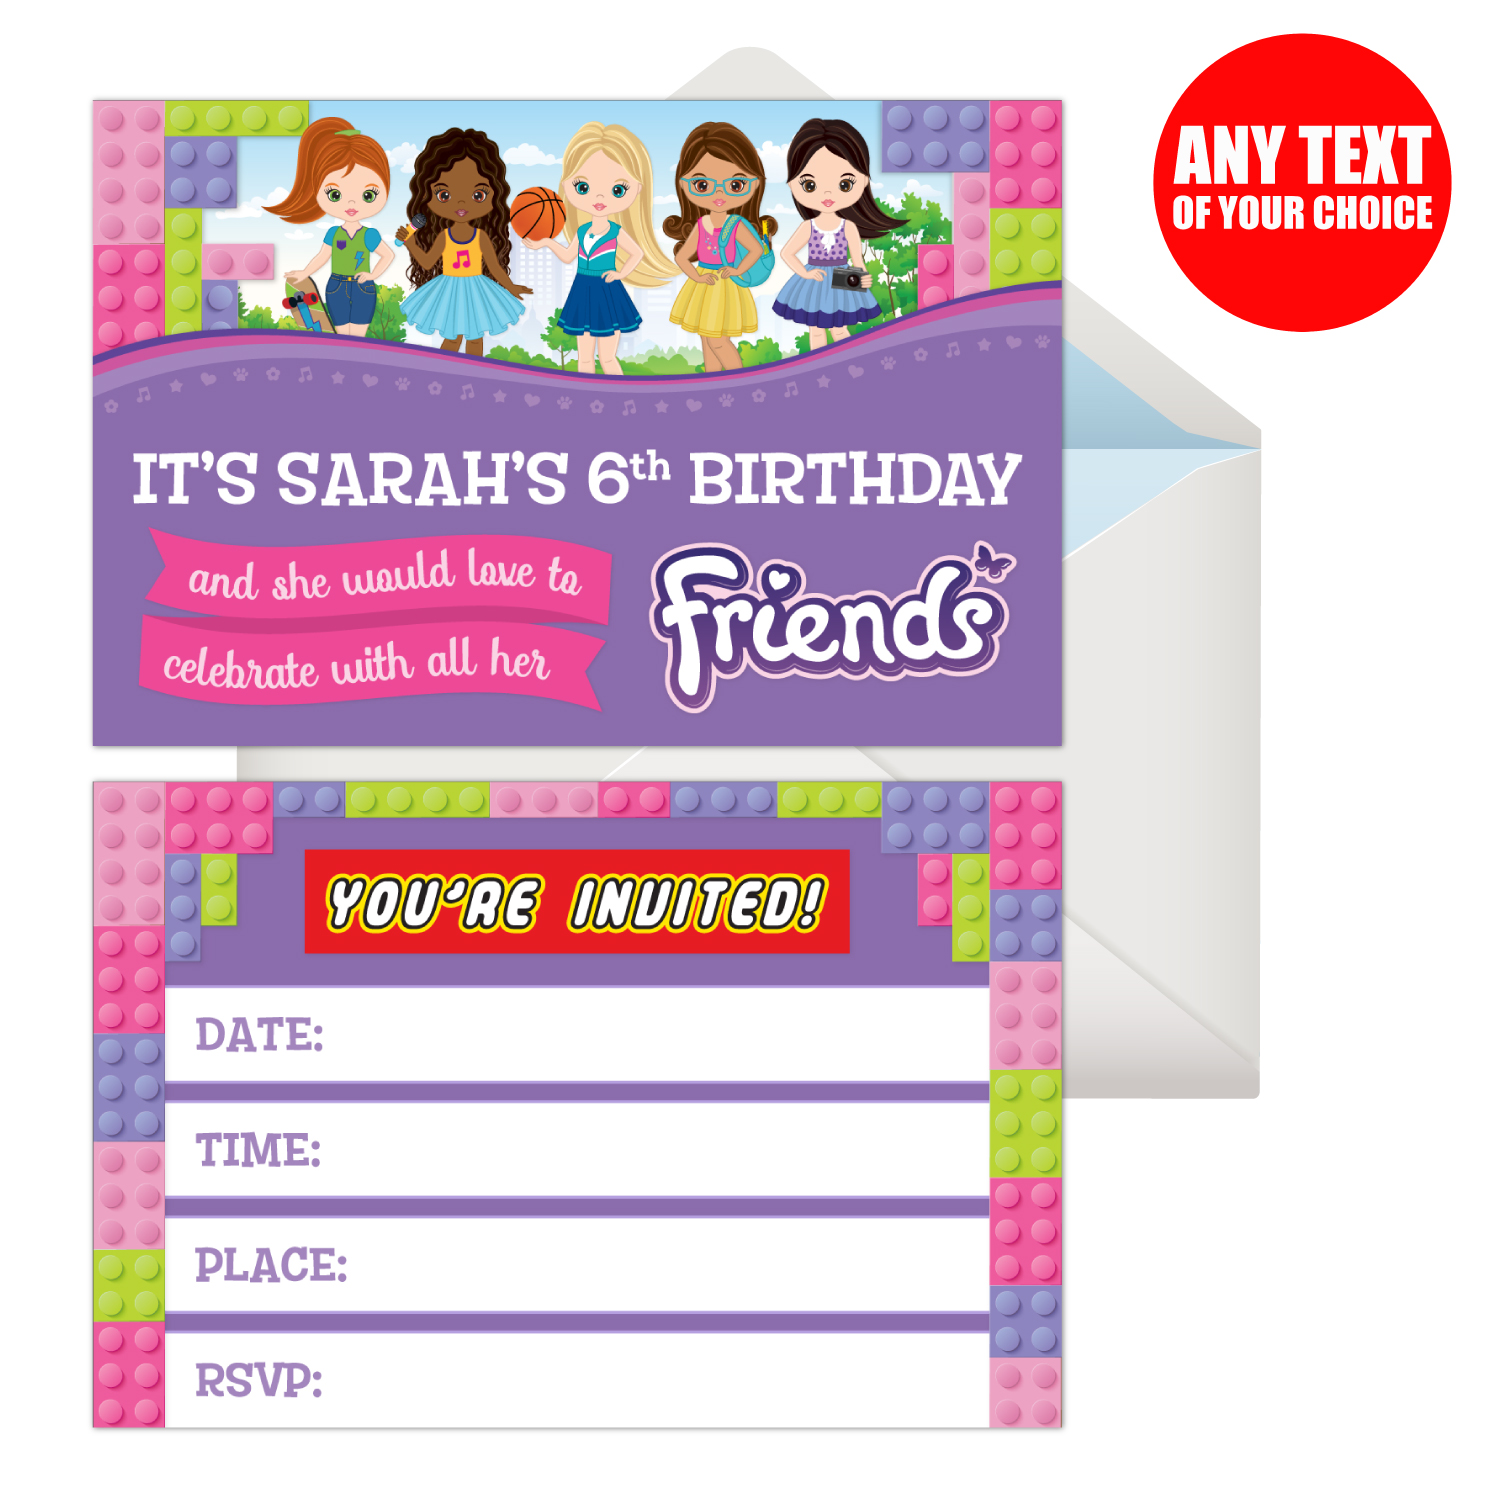 Lego Friends PERSONALIZED Invitations - 8 Pk